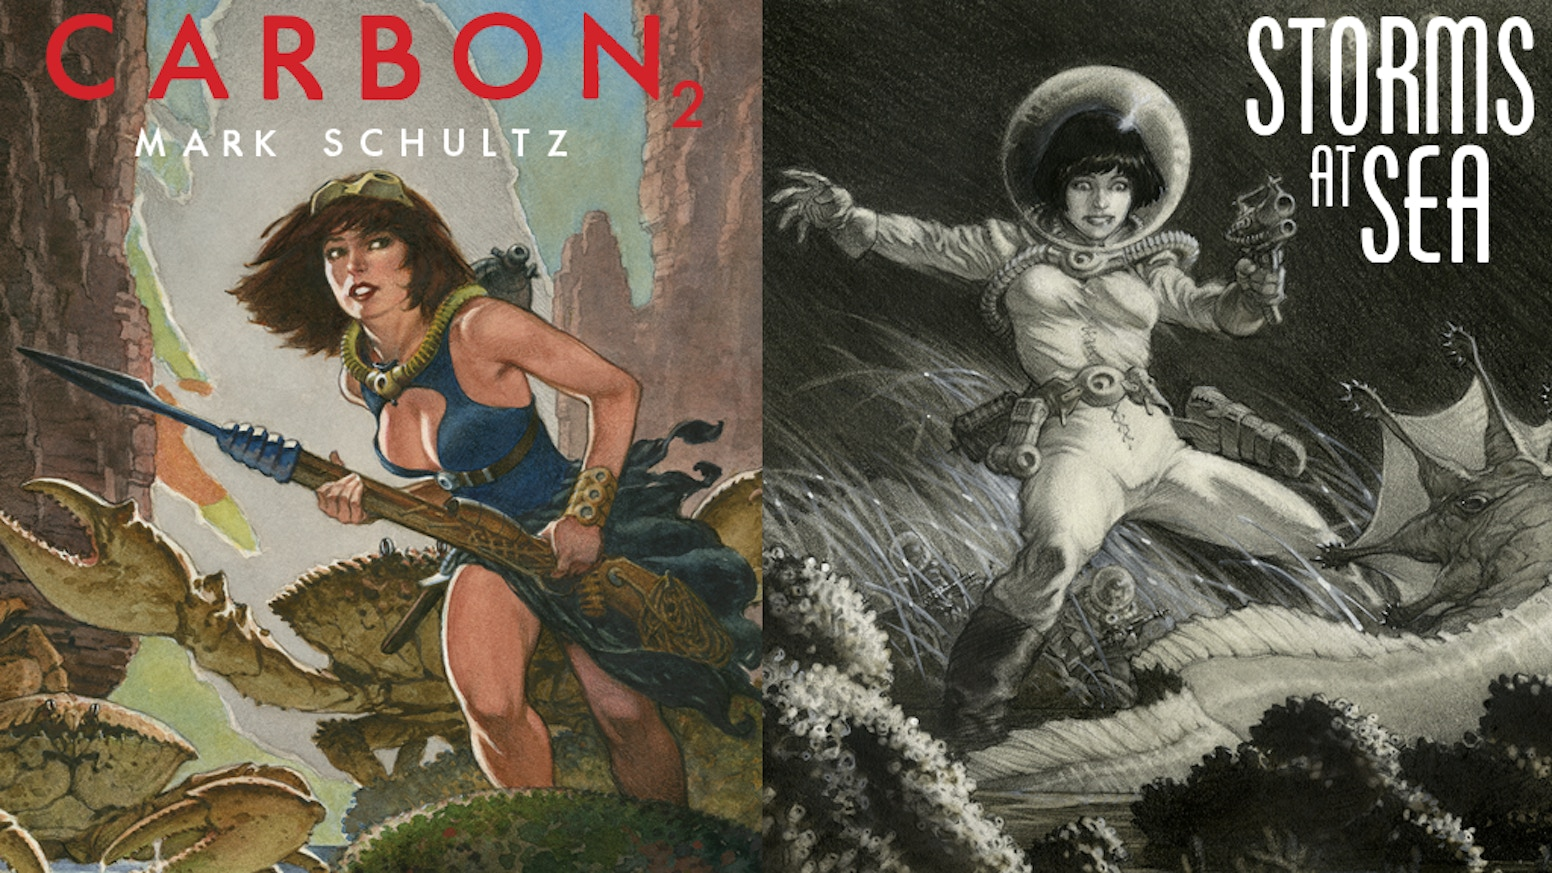 Mark Schultz's Storms at Sea and Carbon 2 books in premium signed deluxe formats!